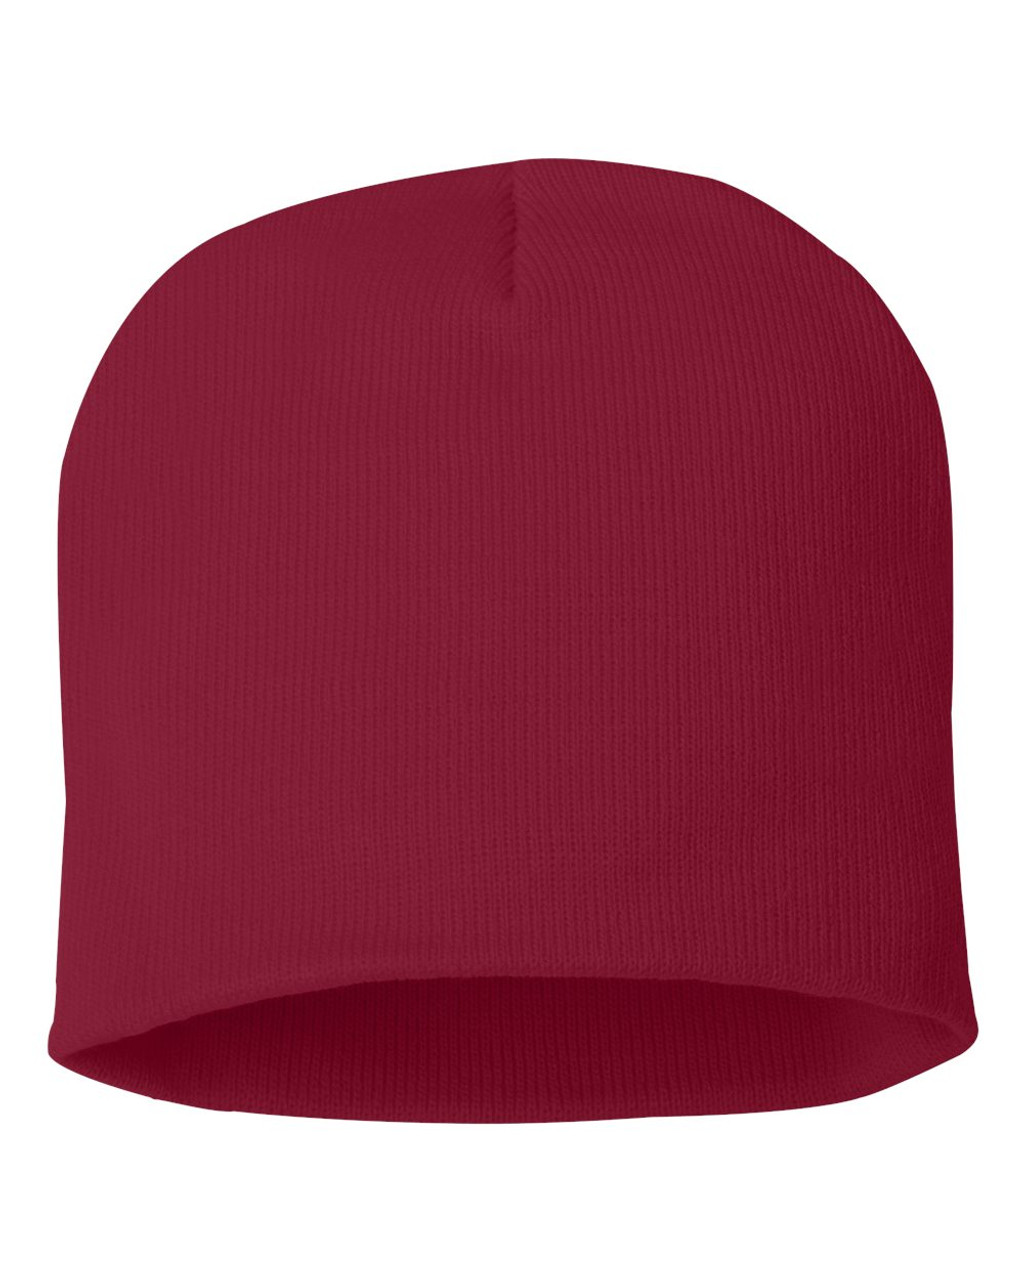 "Cardinal - SP08 Sportsman Acrylic Knit 8"" Toque 